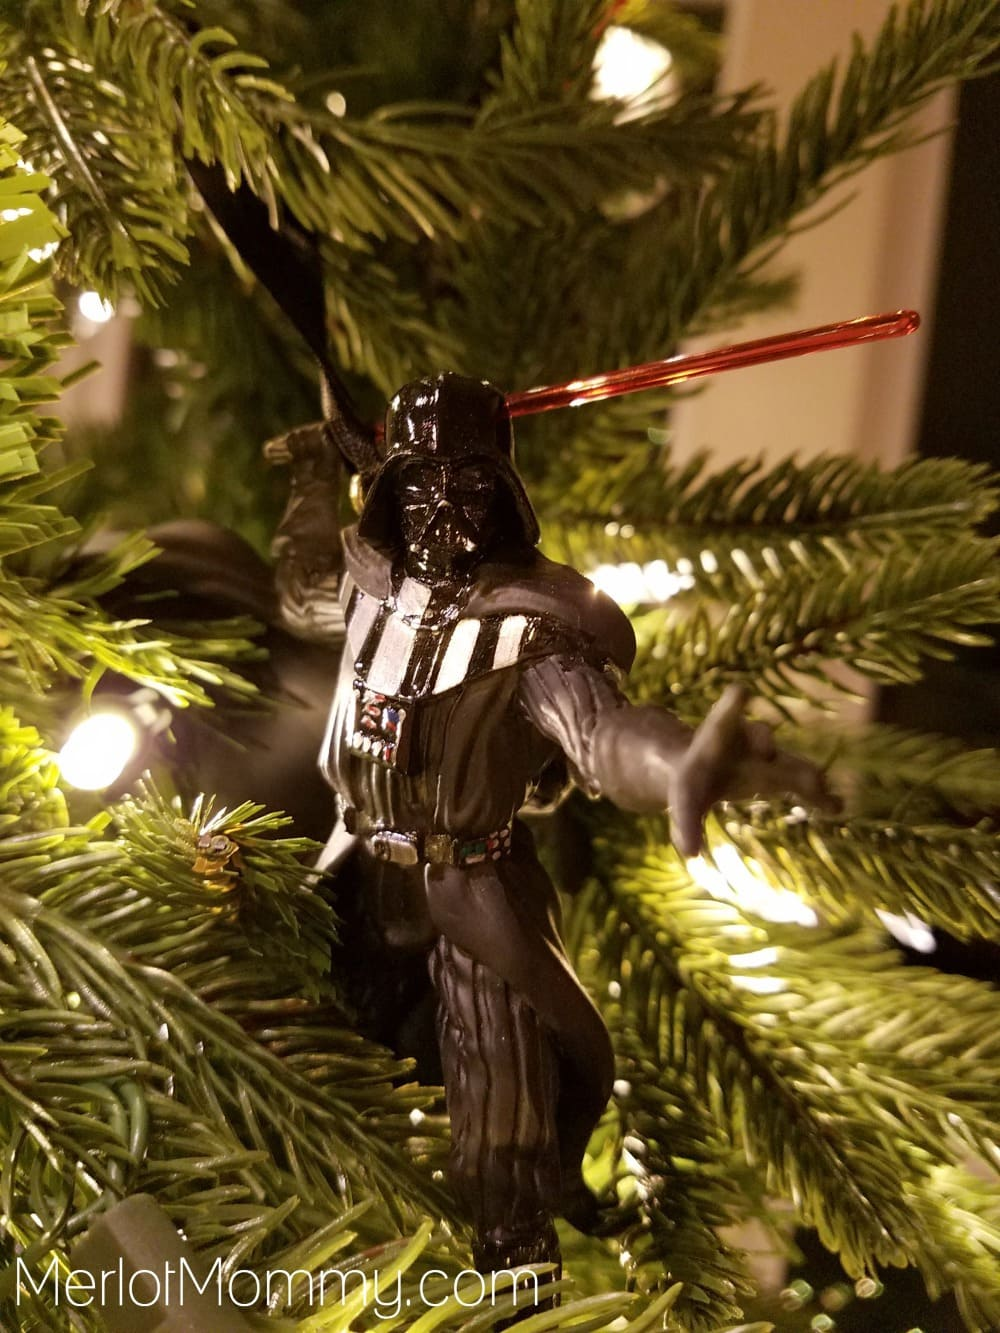 Make Decorating Your Tree for the Holidays Easy with ULTIMA Tree - Backlit Ornamenr